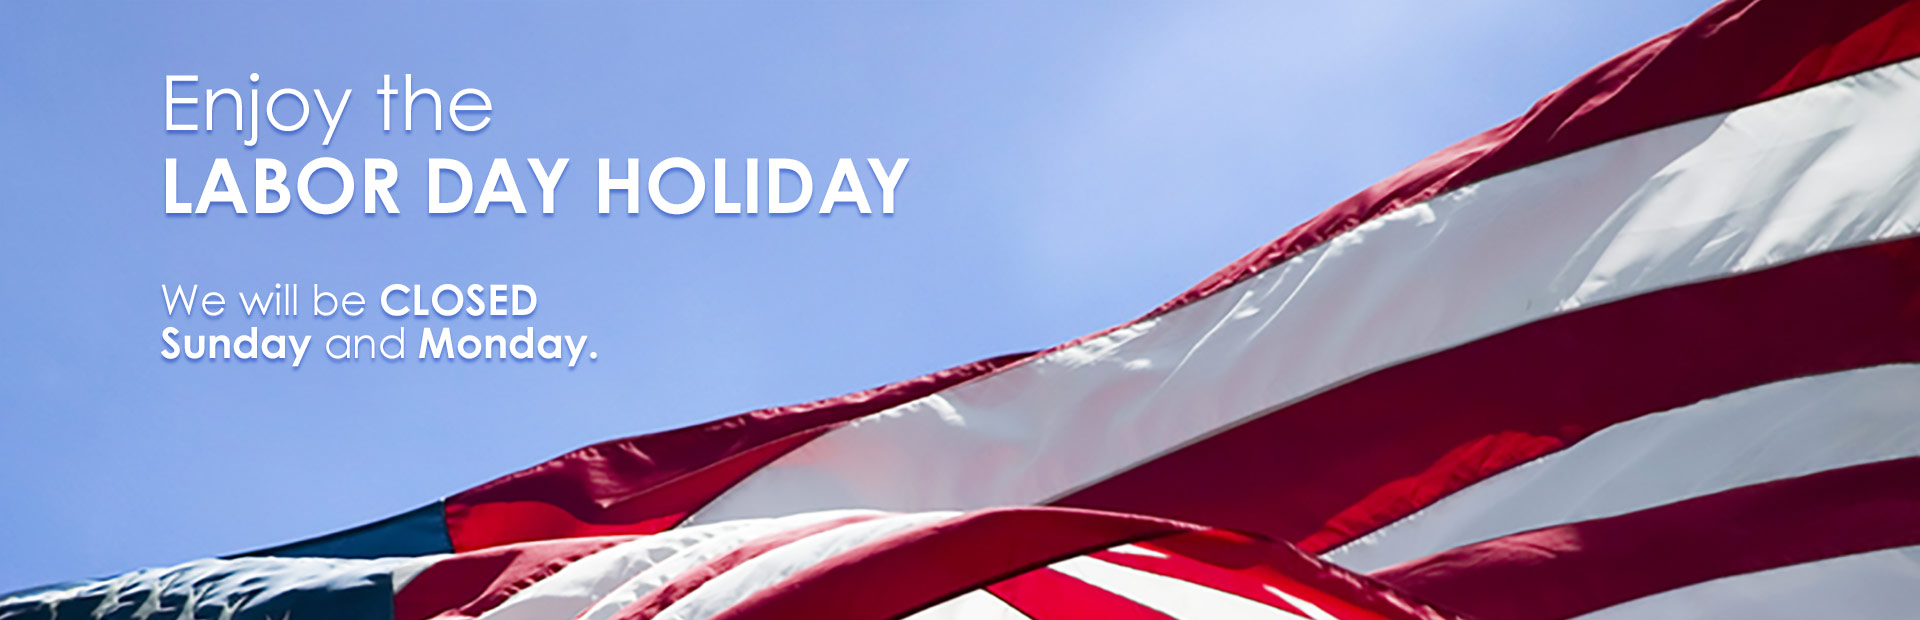 We will be closed Sunday and Monday on Labor Day weekend. Enjoy the holiday!